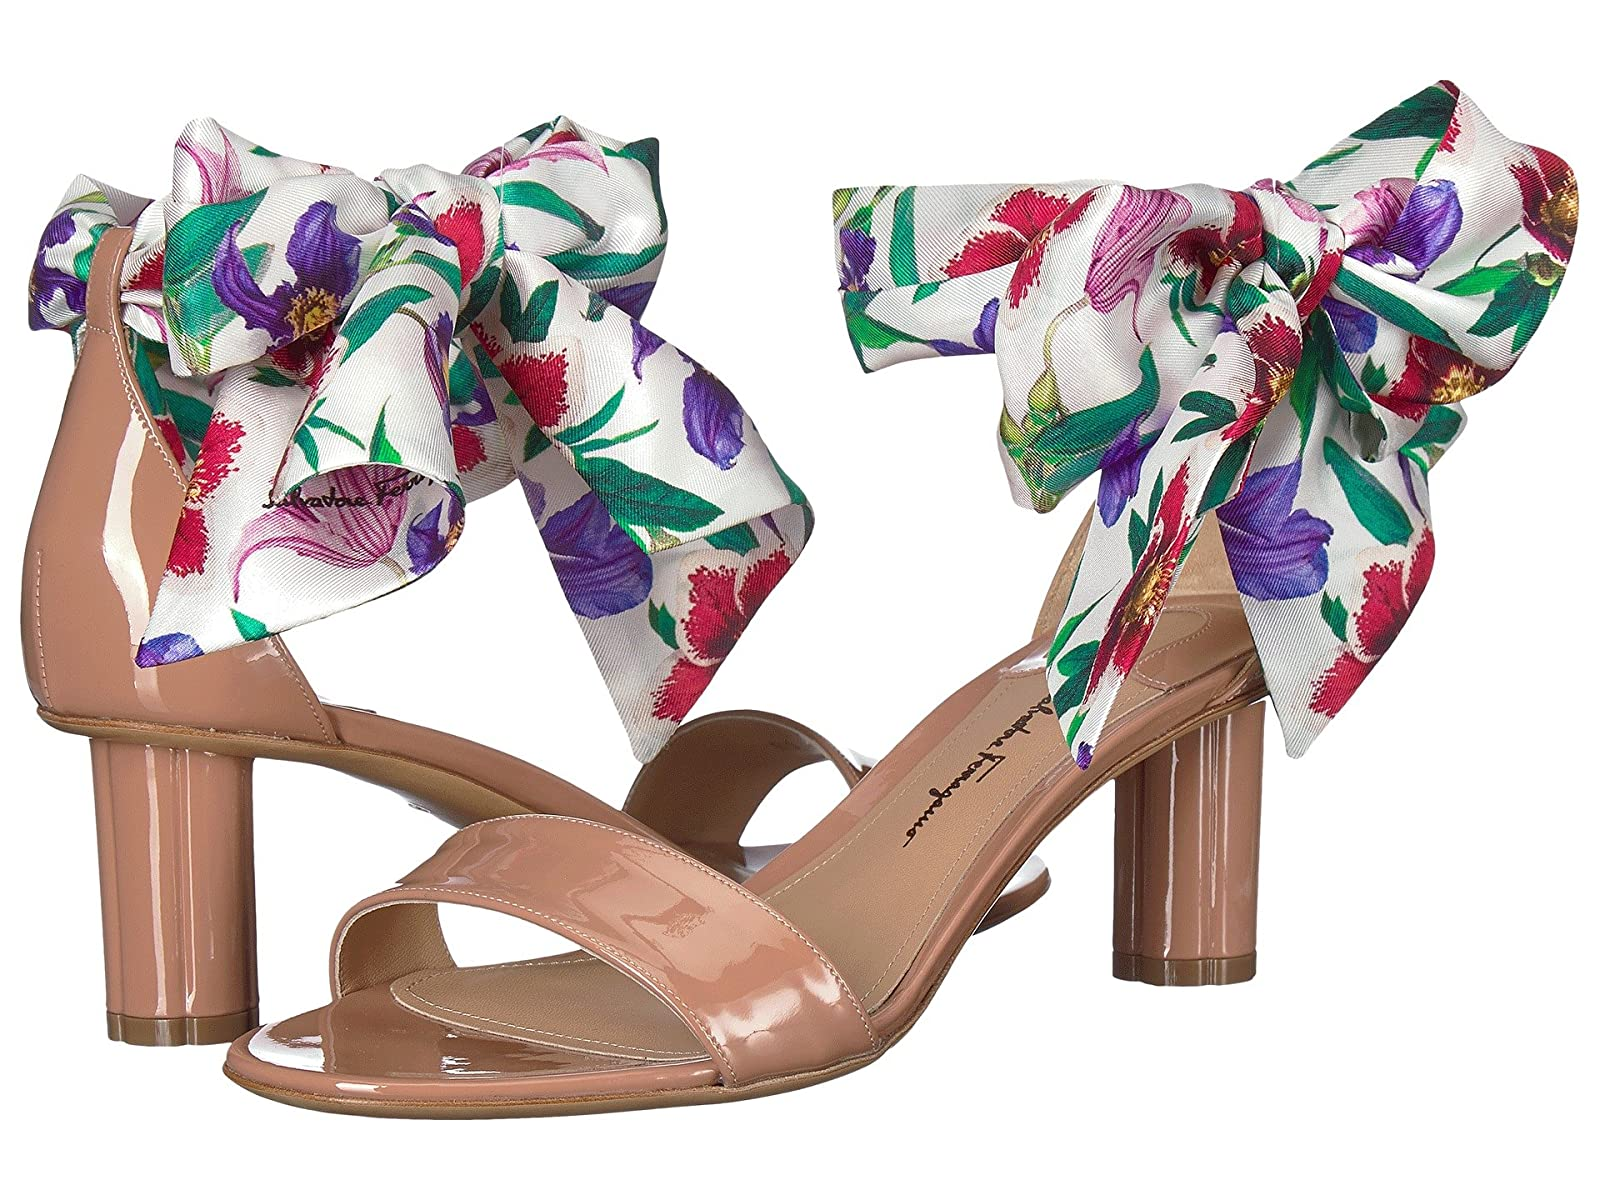 Salvatore Ferragamo TursiCheap and distinctive eye-catching shoes